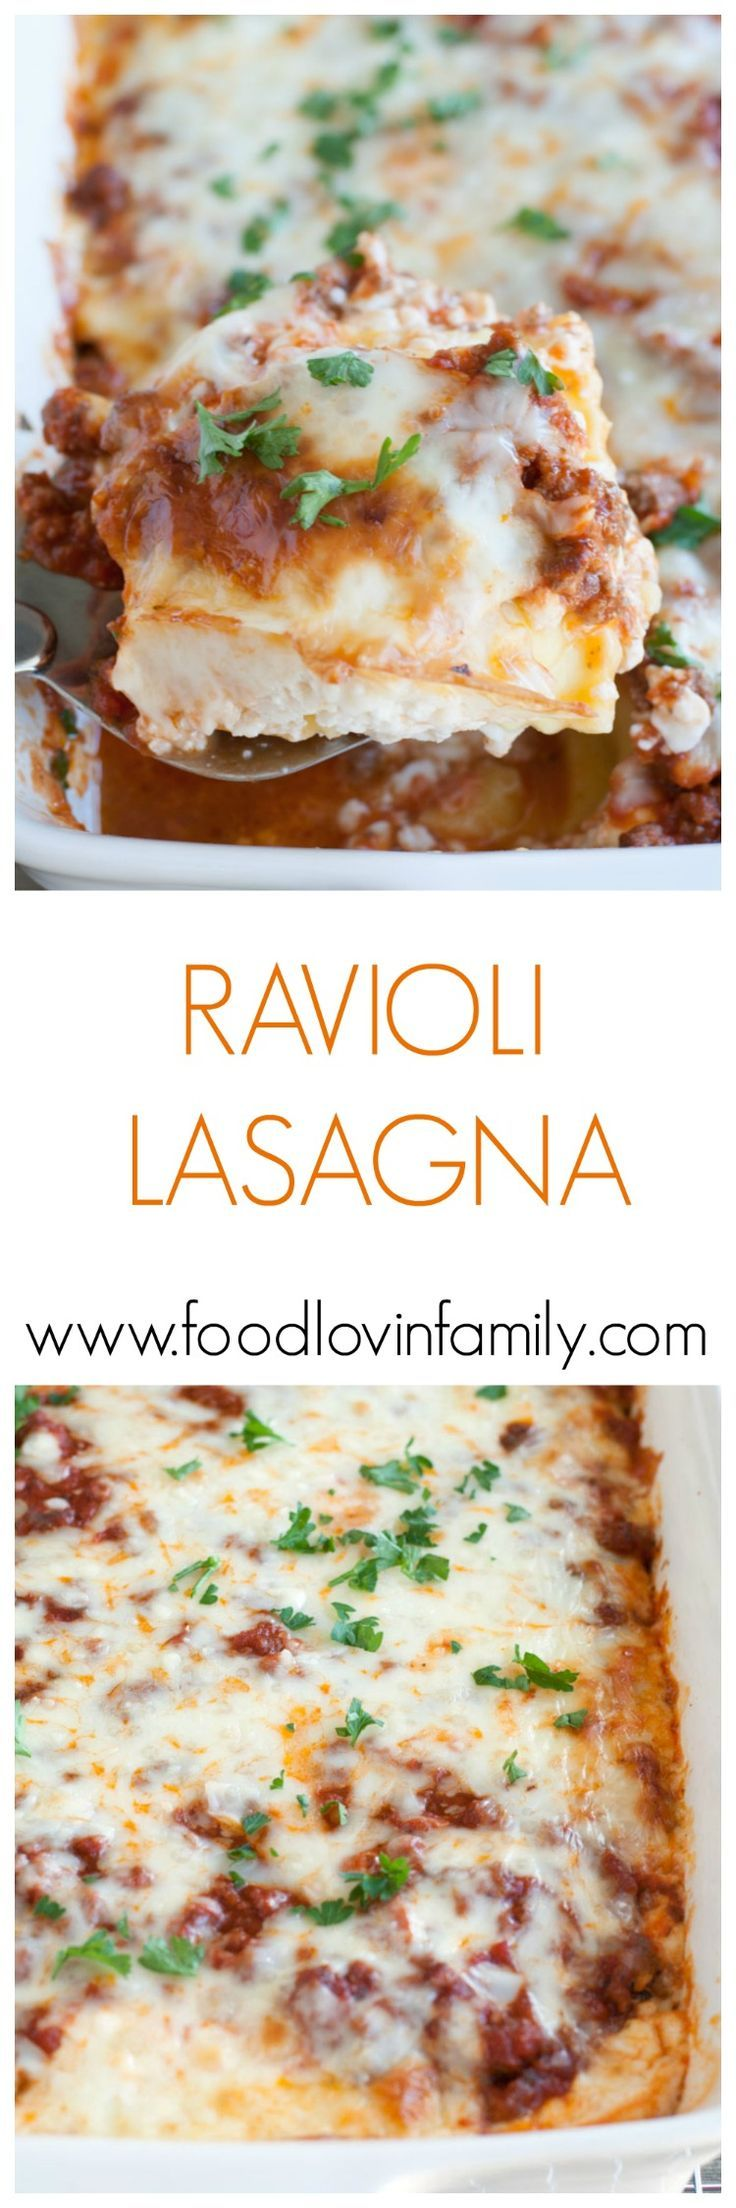 Baked Ravioli Lasagna is easy and cheesy. A new family favorite made quick with refrigerated or frozen ravioli and jarred sauce. | http://www.foodlovinfamily.com/baked-ravioli-lasagna/